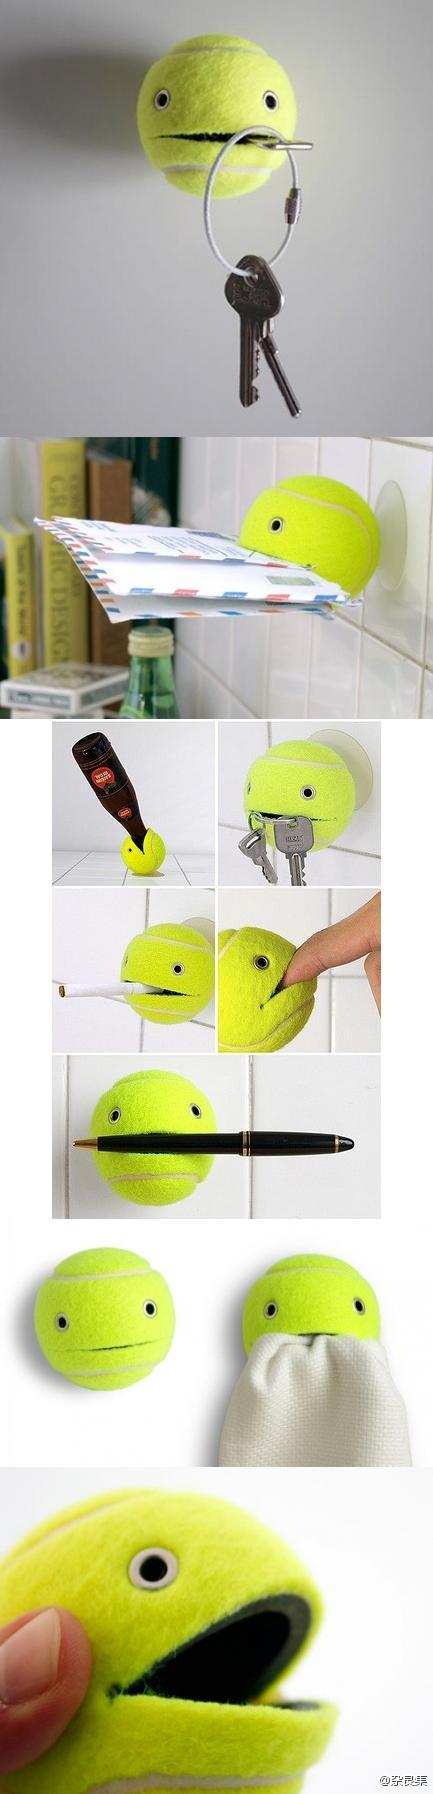 Tennis ball helper Accessories DIY Plastics